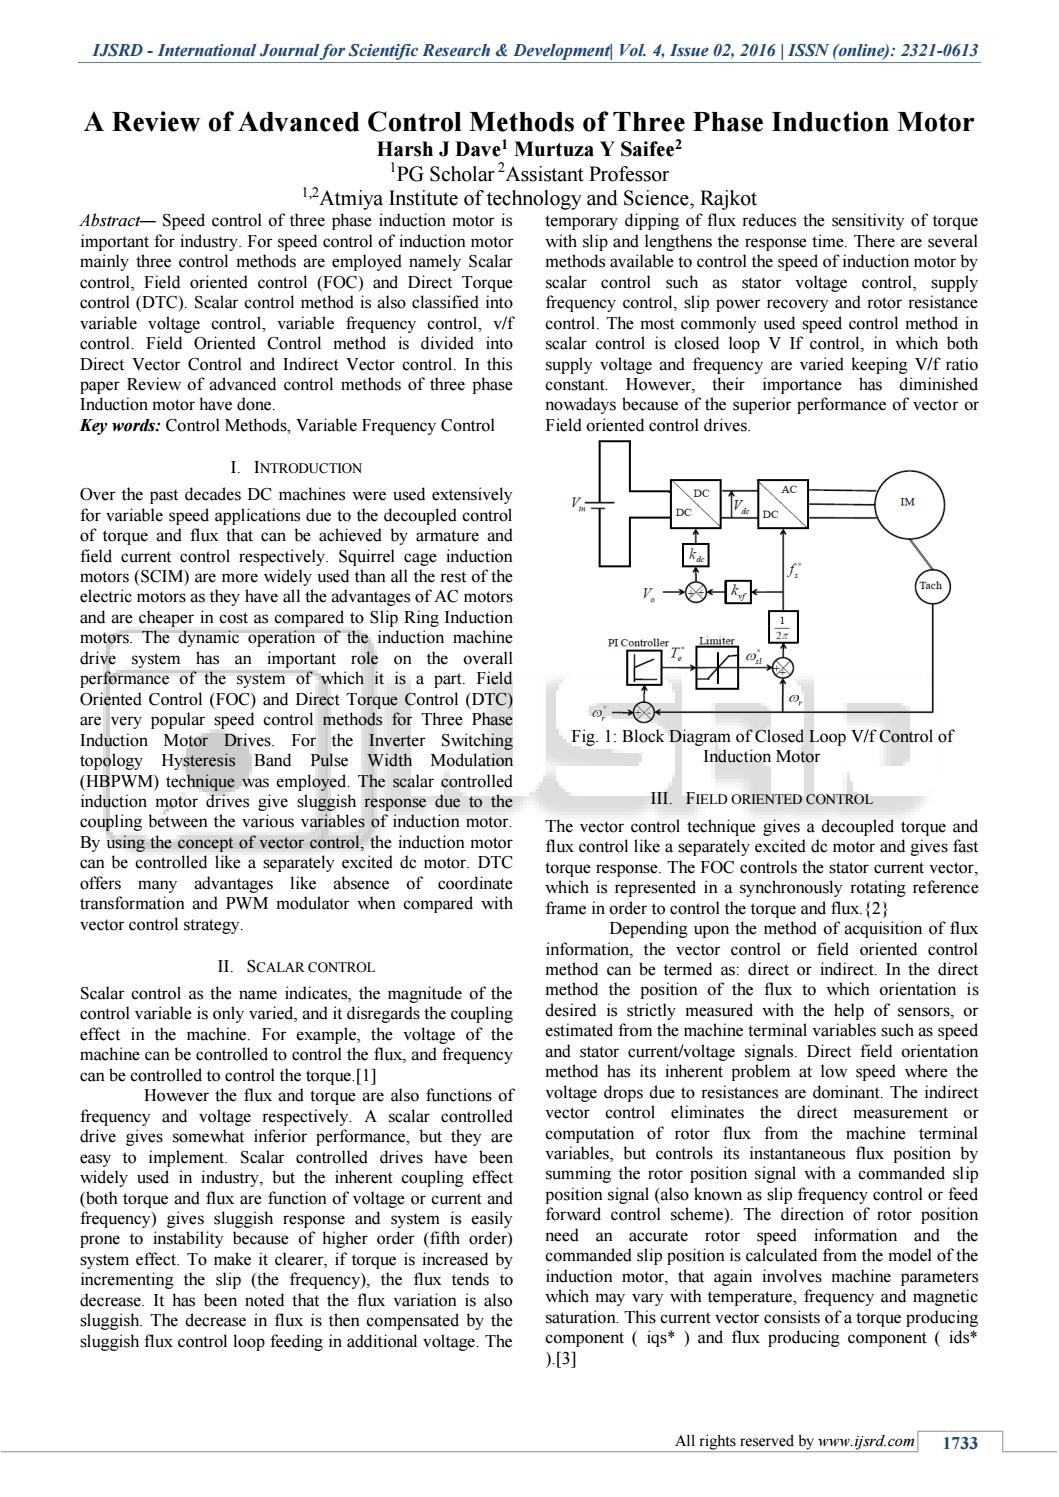 hight resolution of a review of advanced control methods of three phase induction motor